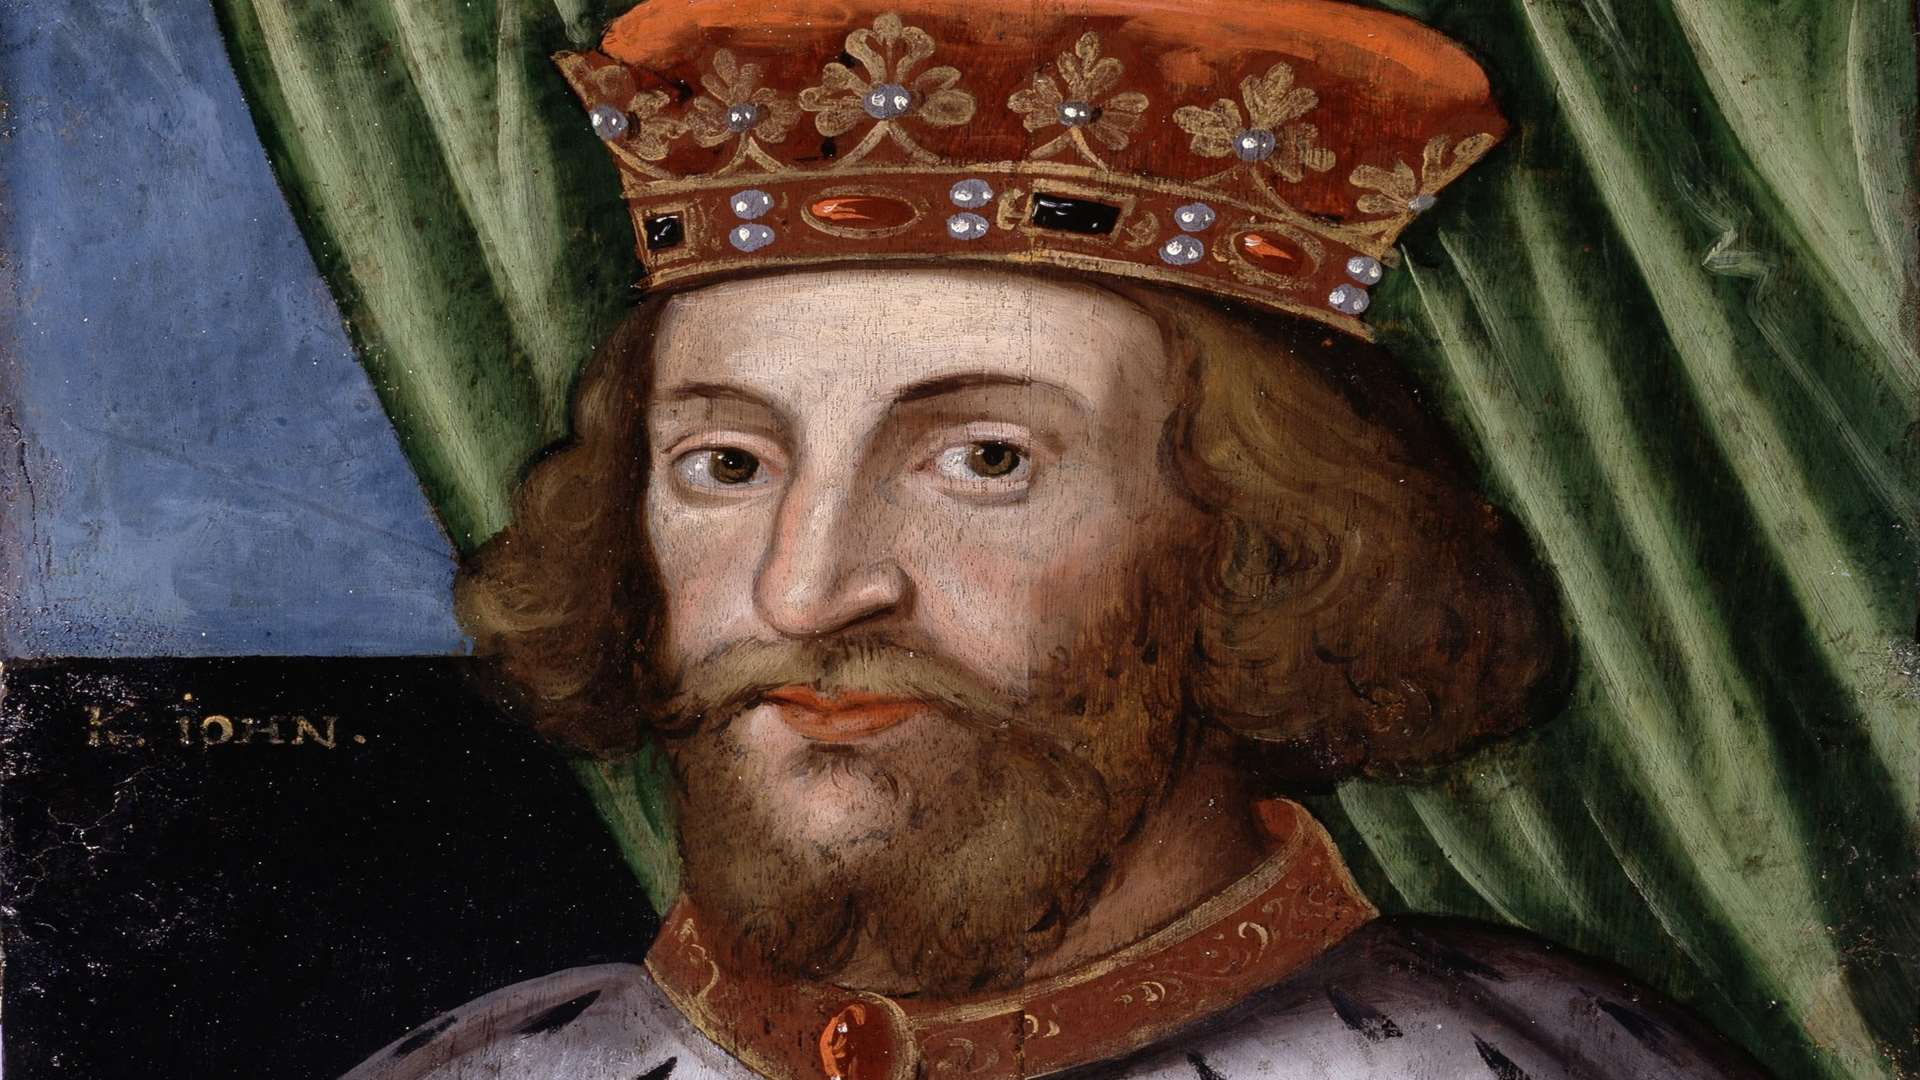 King John, who signed the Magna Carta in 1215